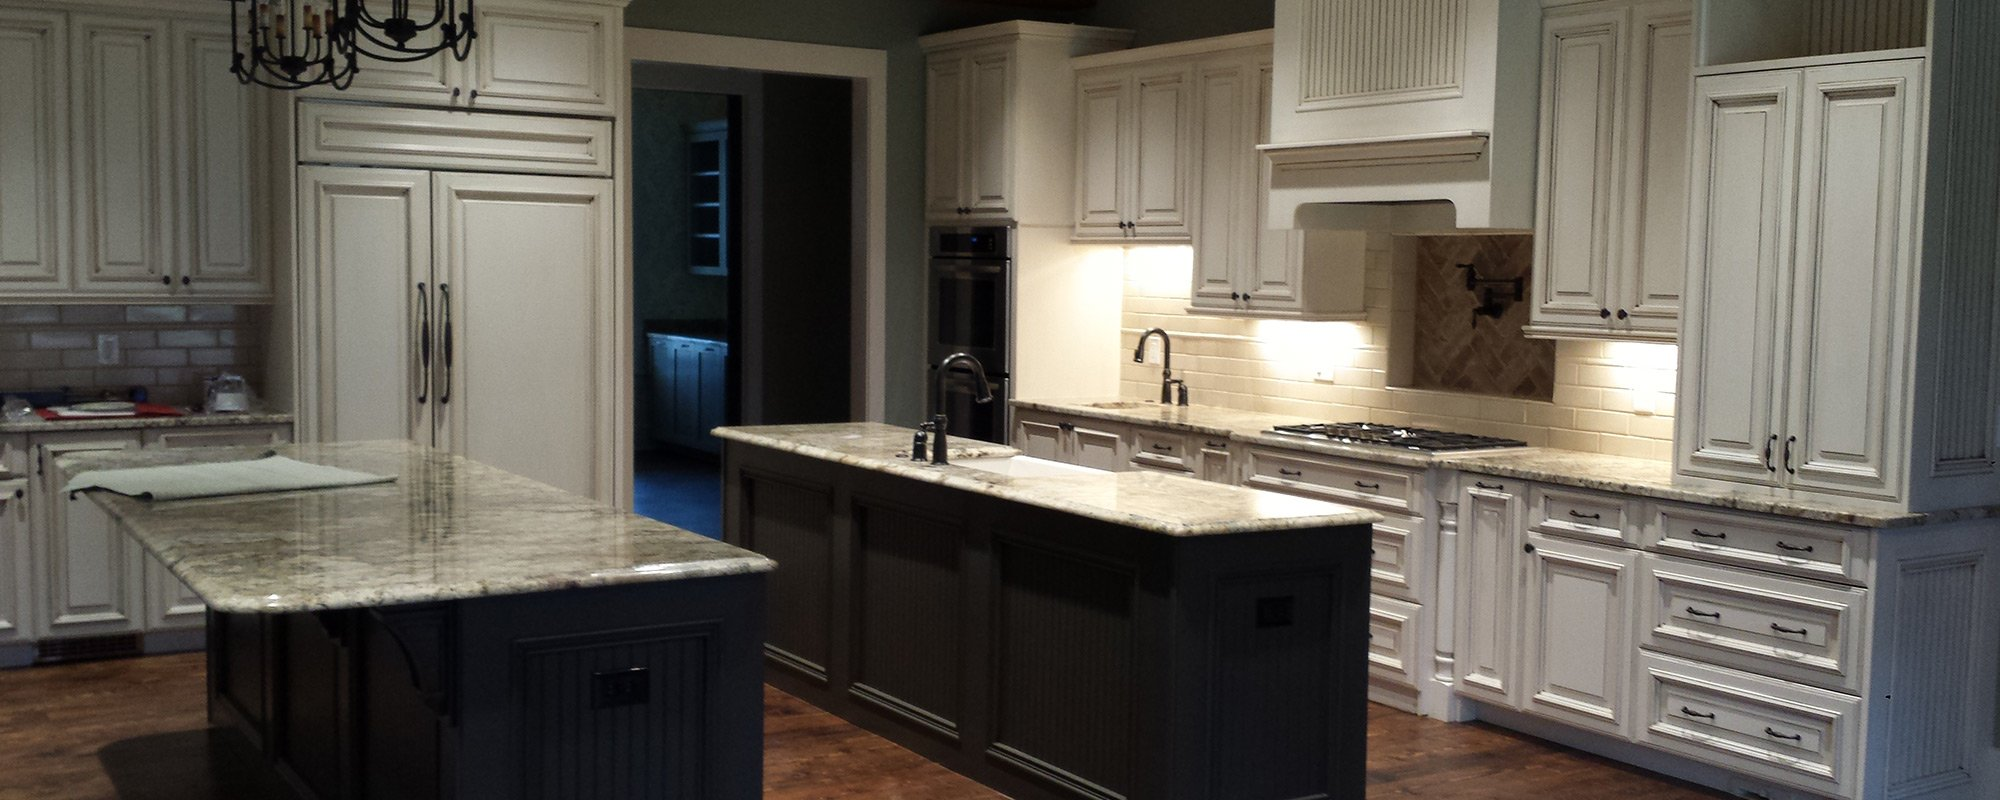 kitchen cabinets in atlanta ga best price custom cabinets cabinet refacing atlanta ga 20544